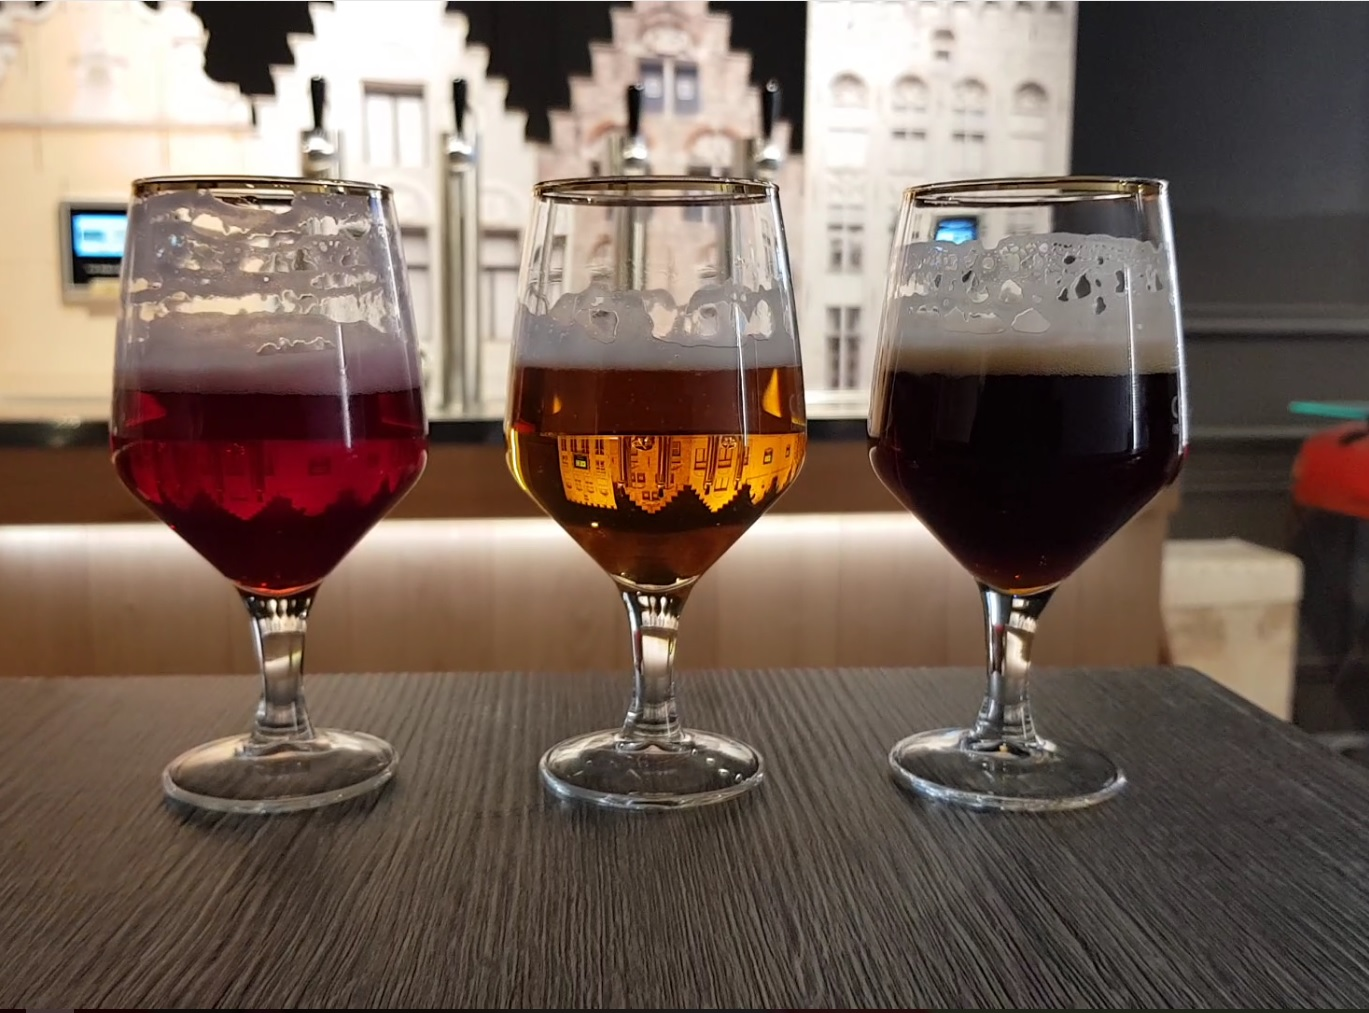 The self-pour Belgian beer pop-up